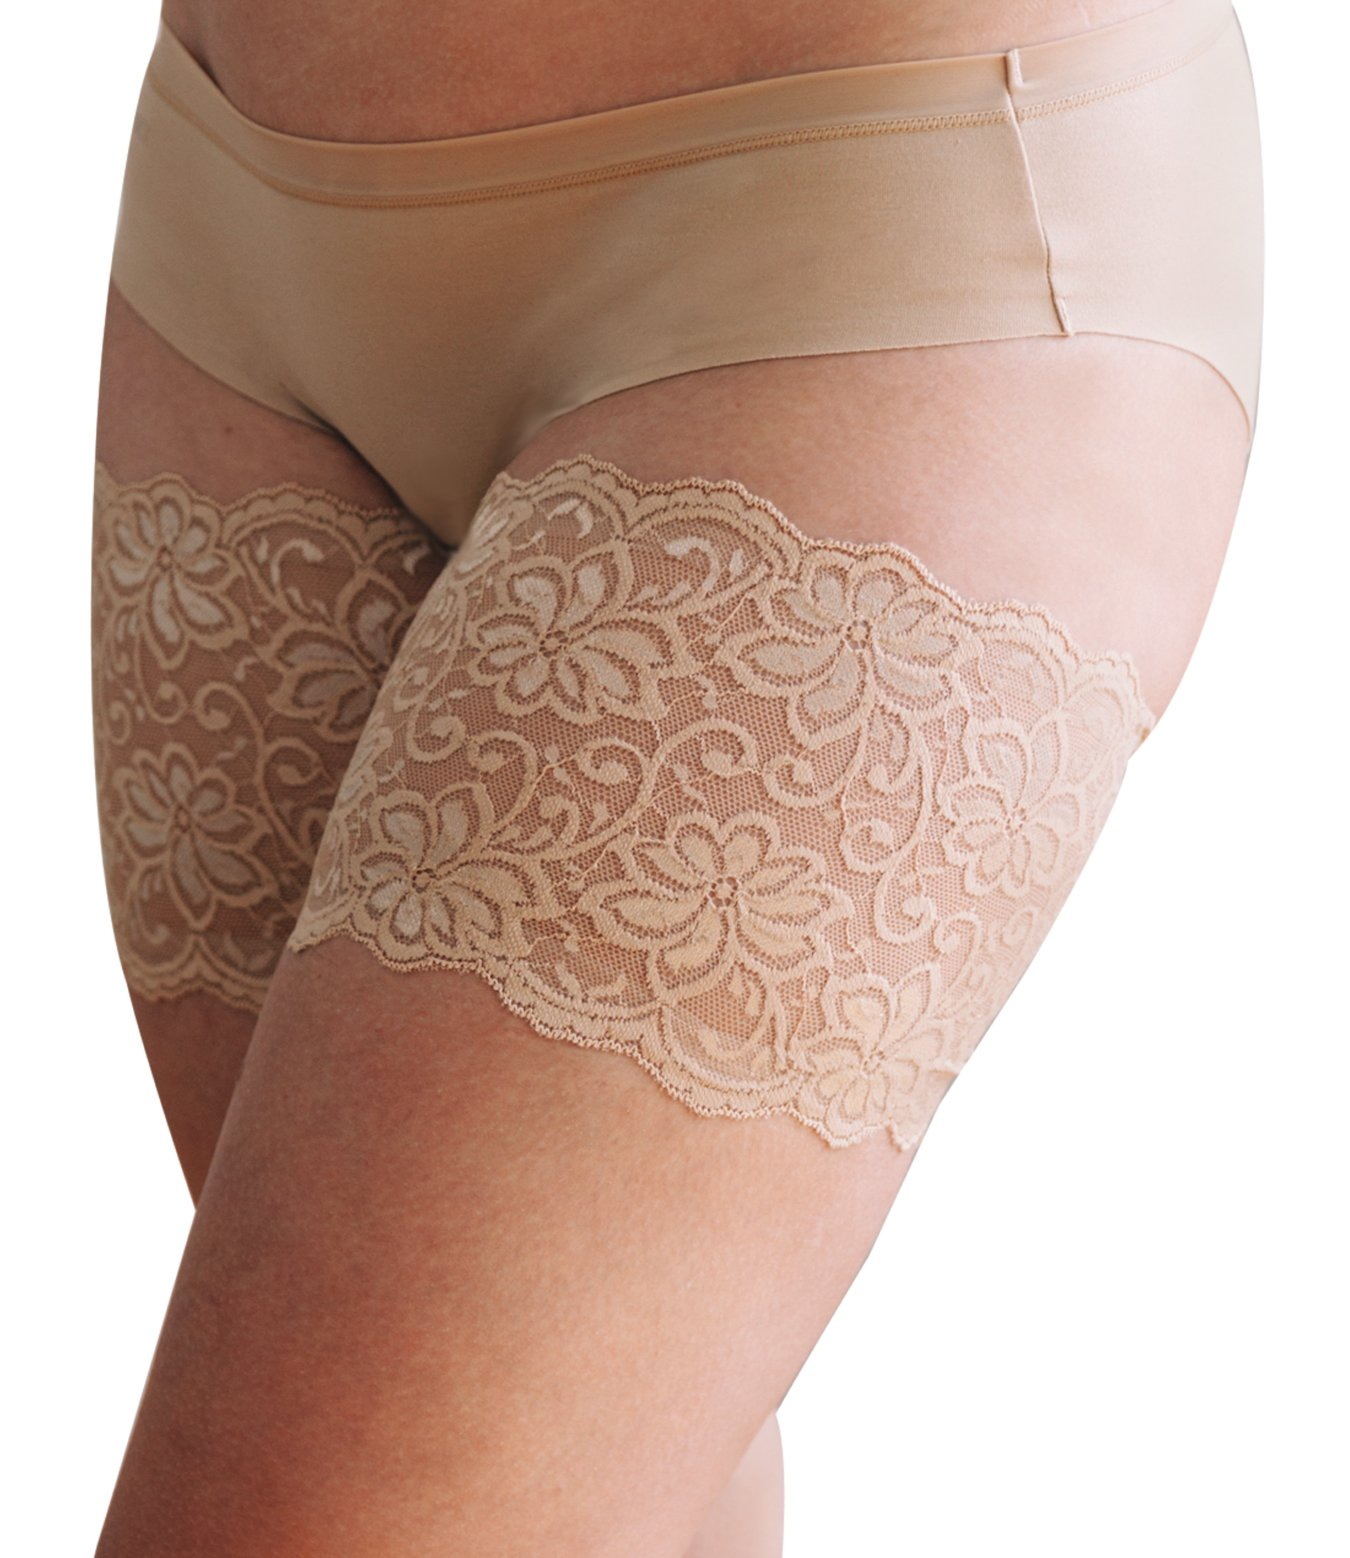 Bandelettes Elastic Anti-Chafing Thigh Bands - Prevent Thigh Chafing - Dolce Beige, Size D